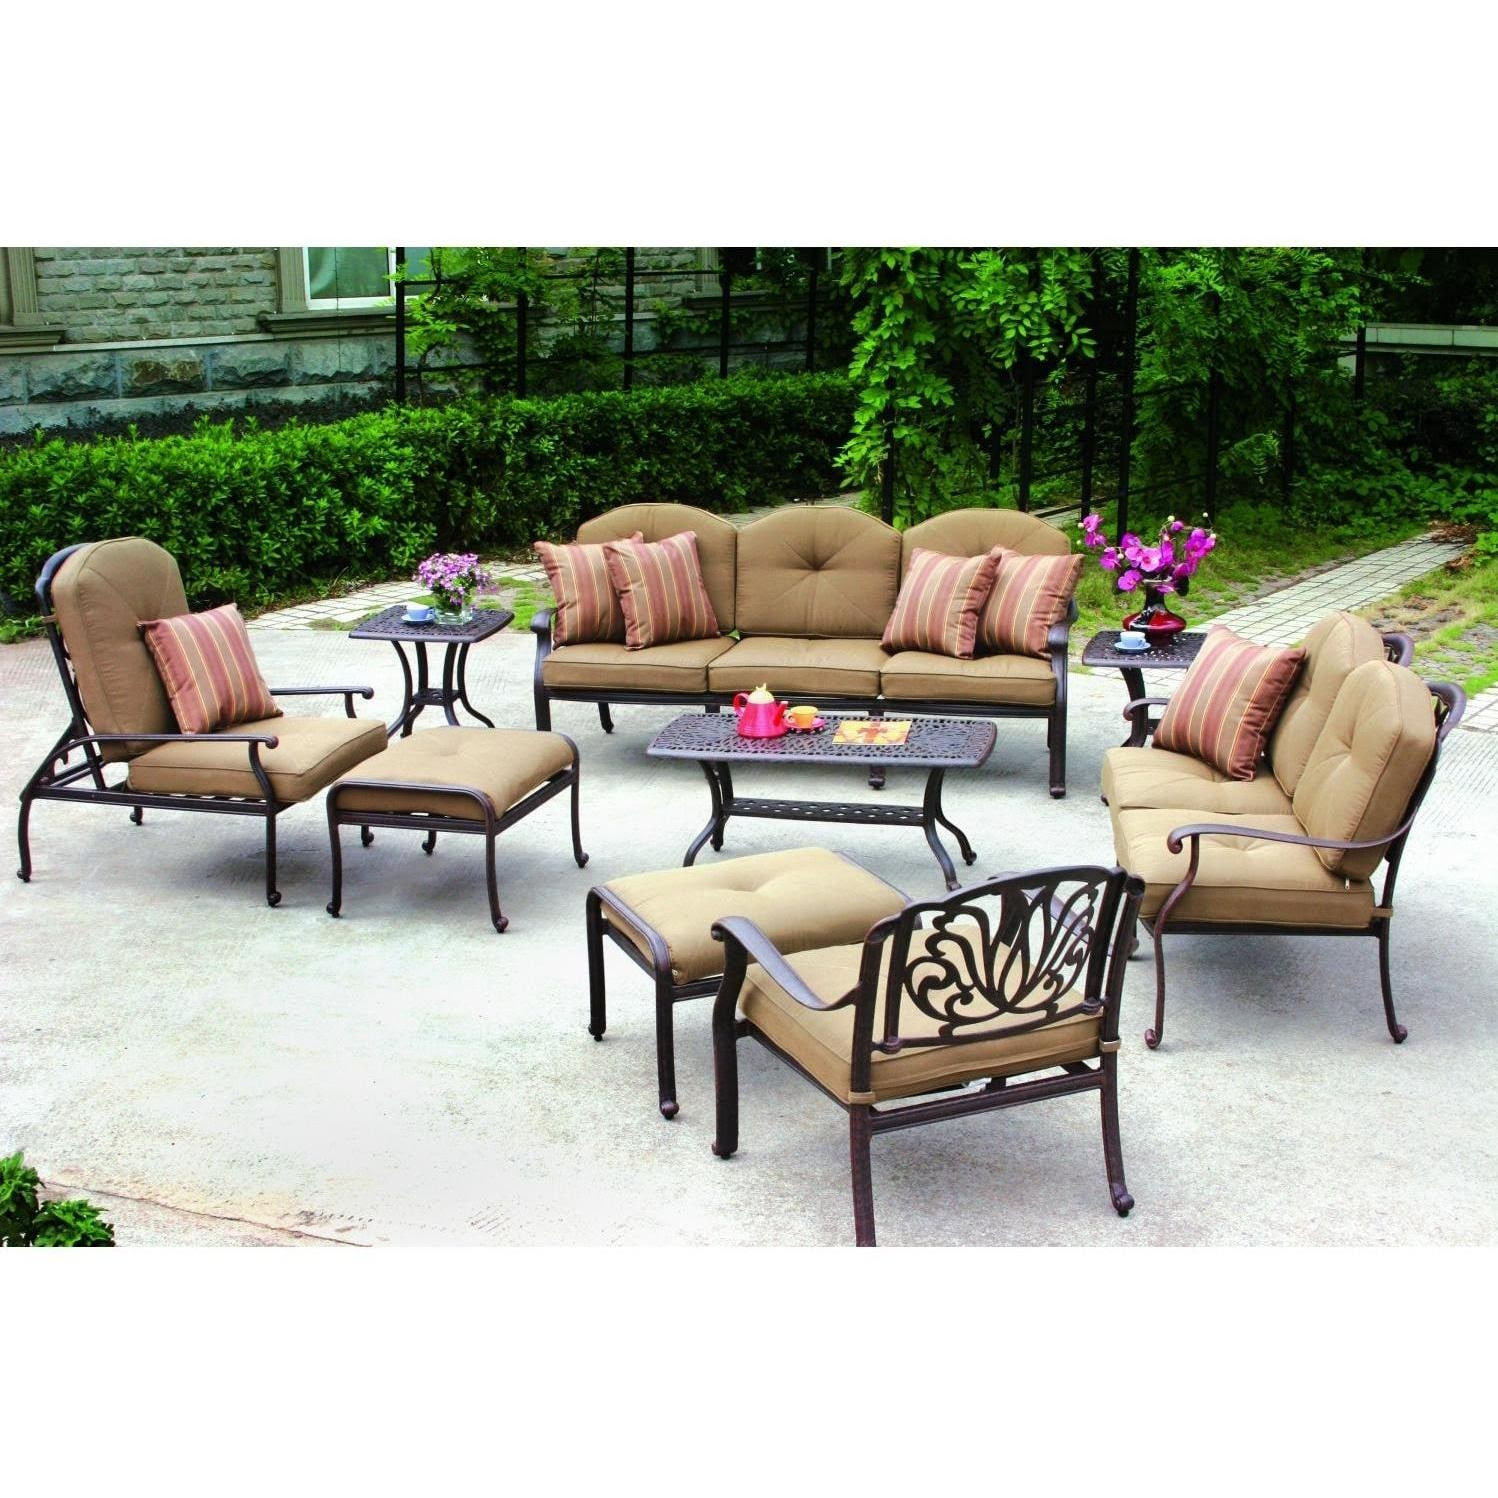 Patio Conversation Sets Clearance